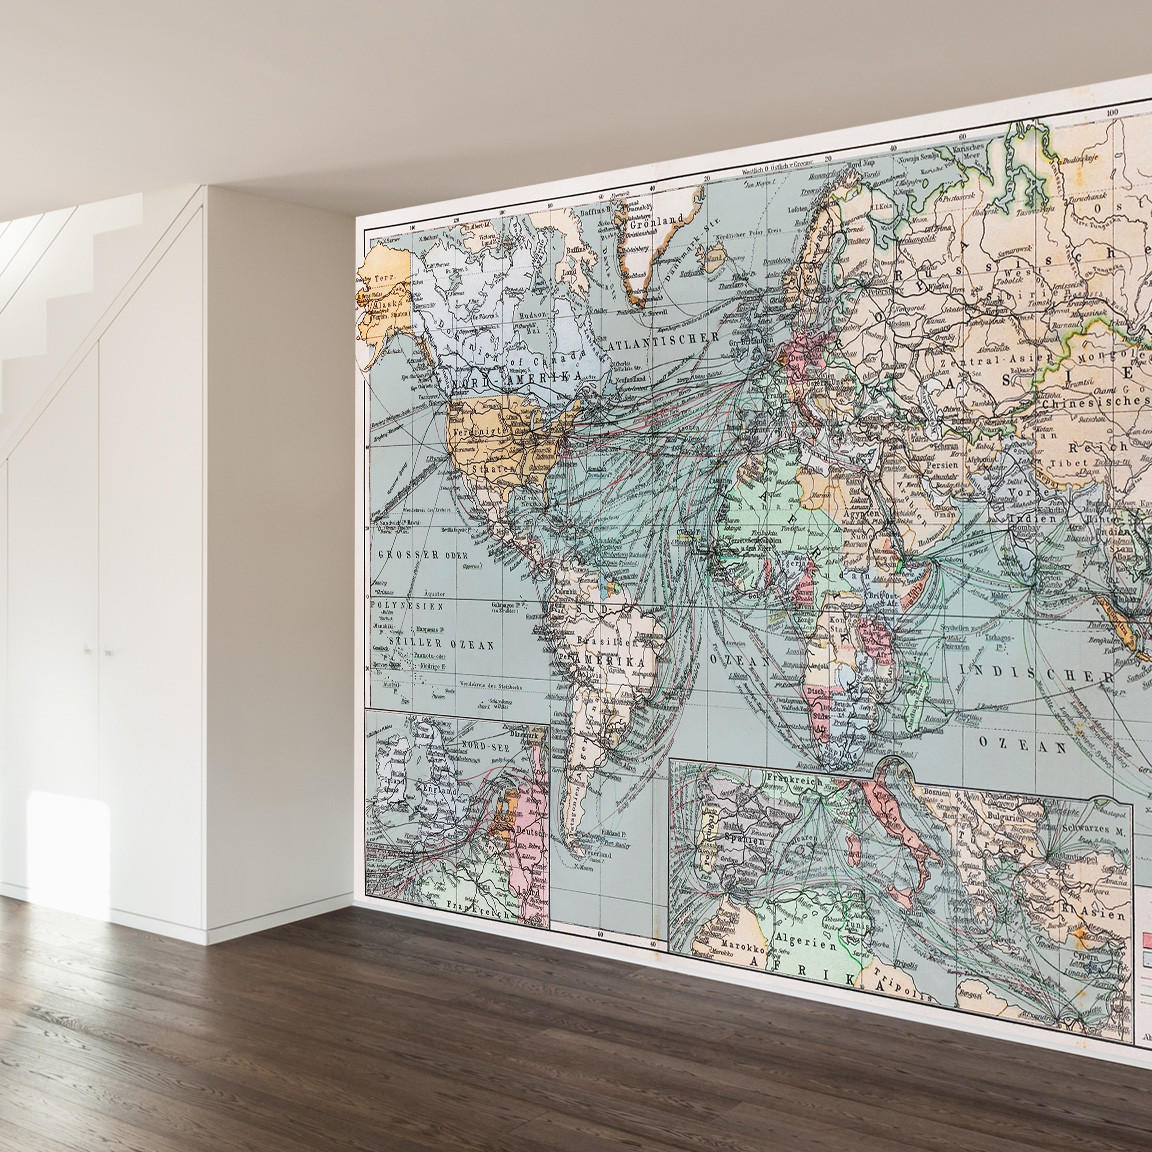 Vintage world map wall mural decal from wallsneedlove for Black and white world map wall mural